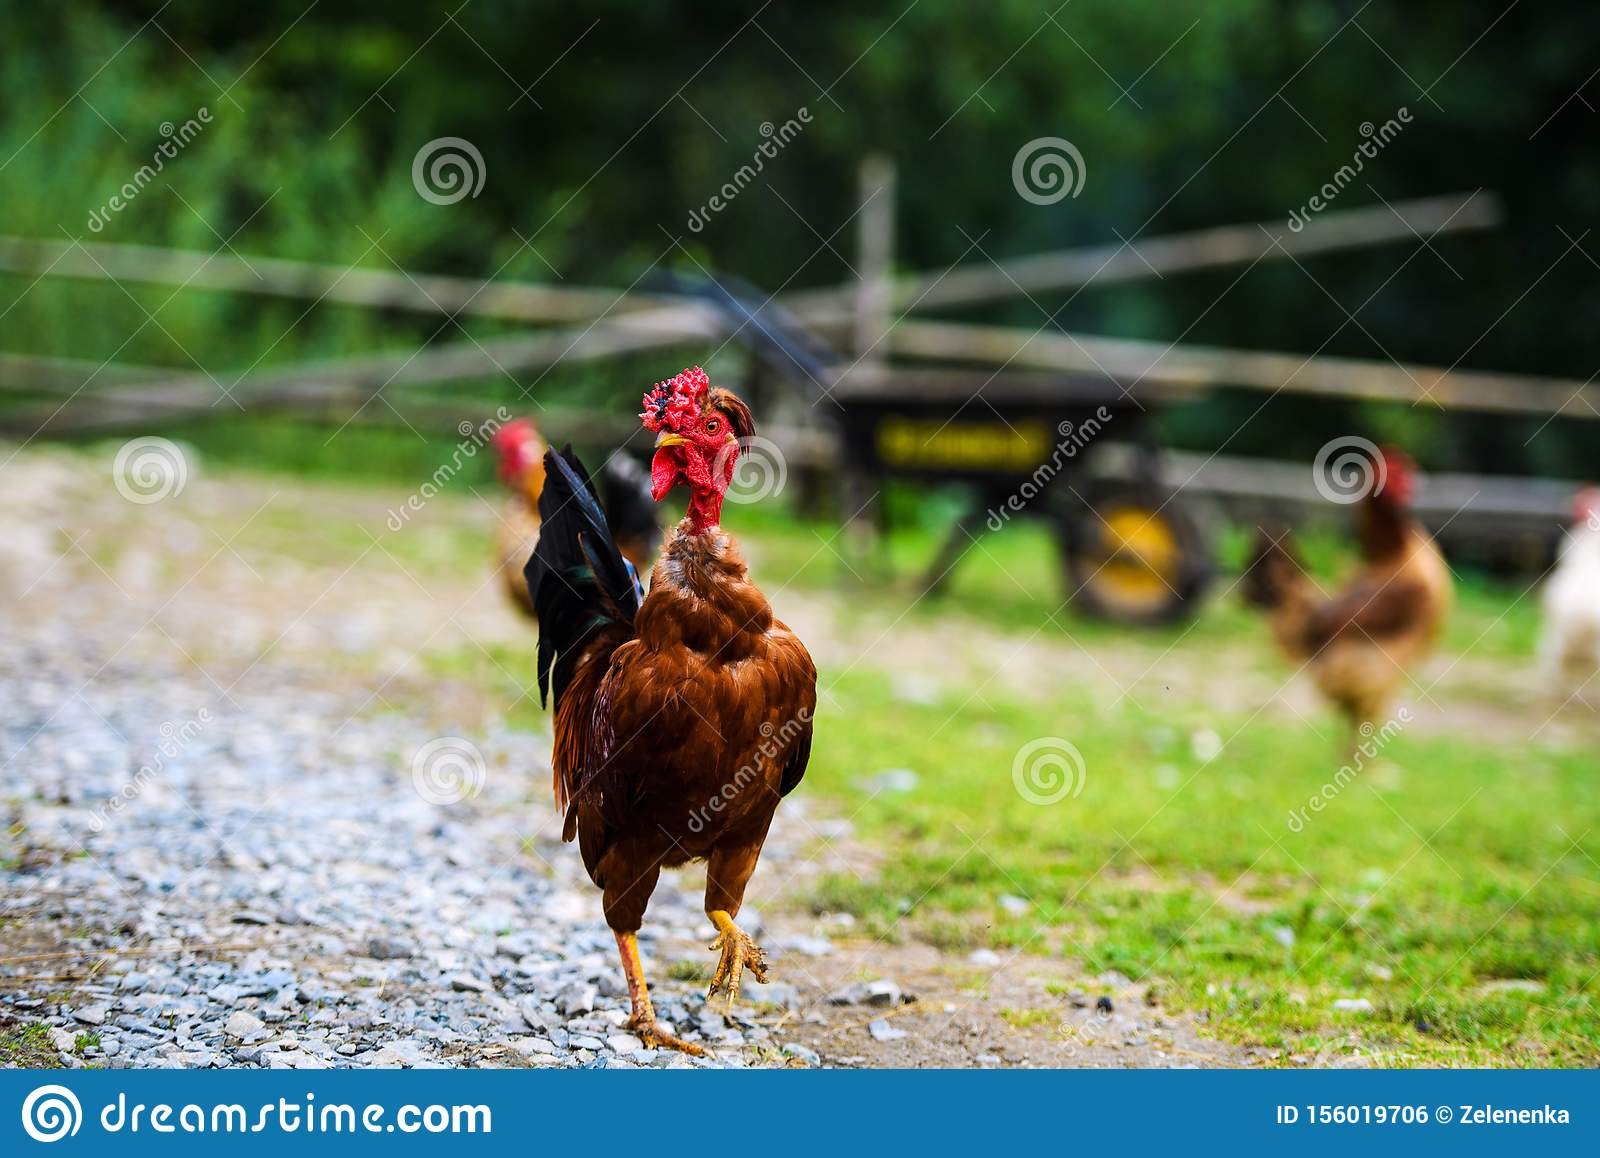 Funny Cock Pics funny chicken on a farm stock photo. image of isolated